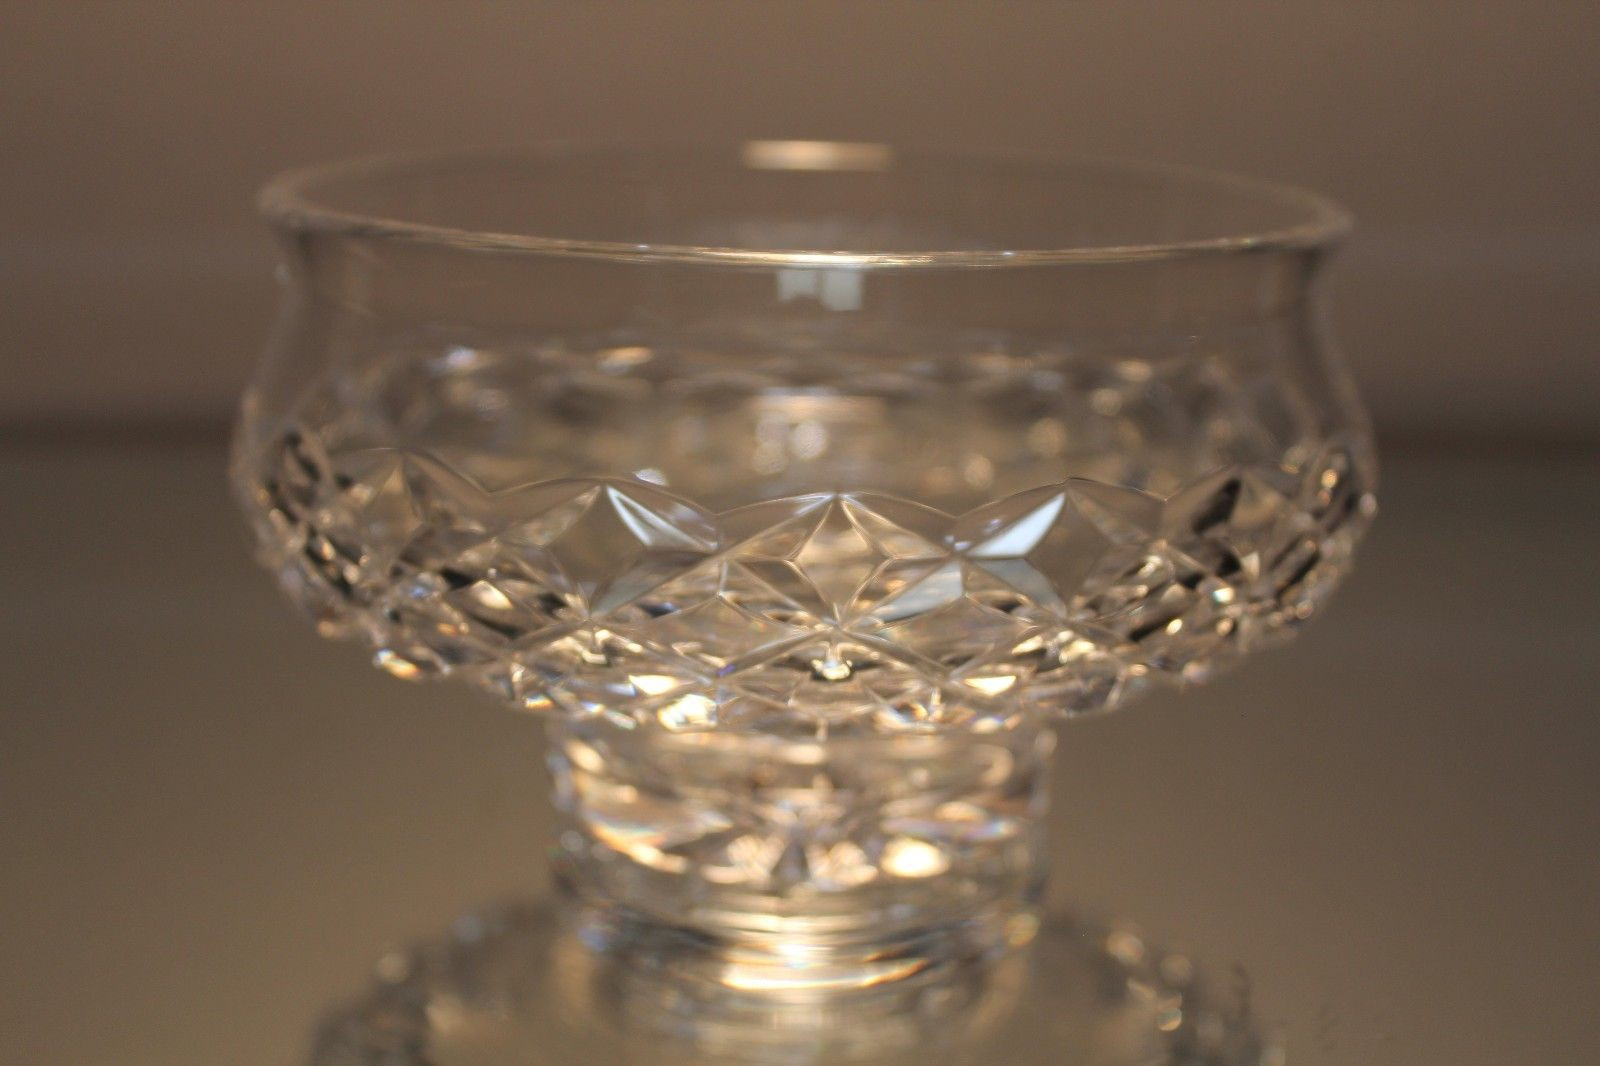 waterford lismore sugar bud vase of waterford crystal alana pattern small footed candy dish bowl regarding 1 of 5 see more